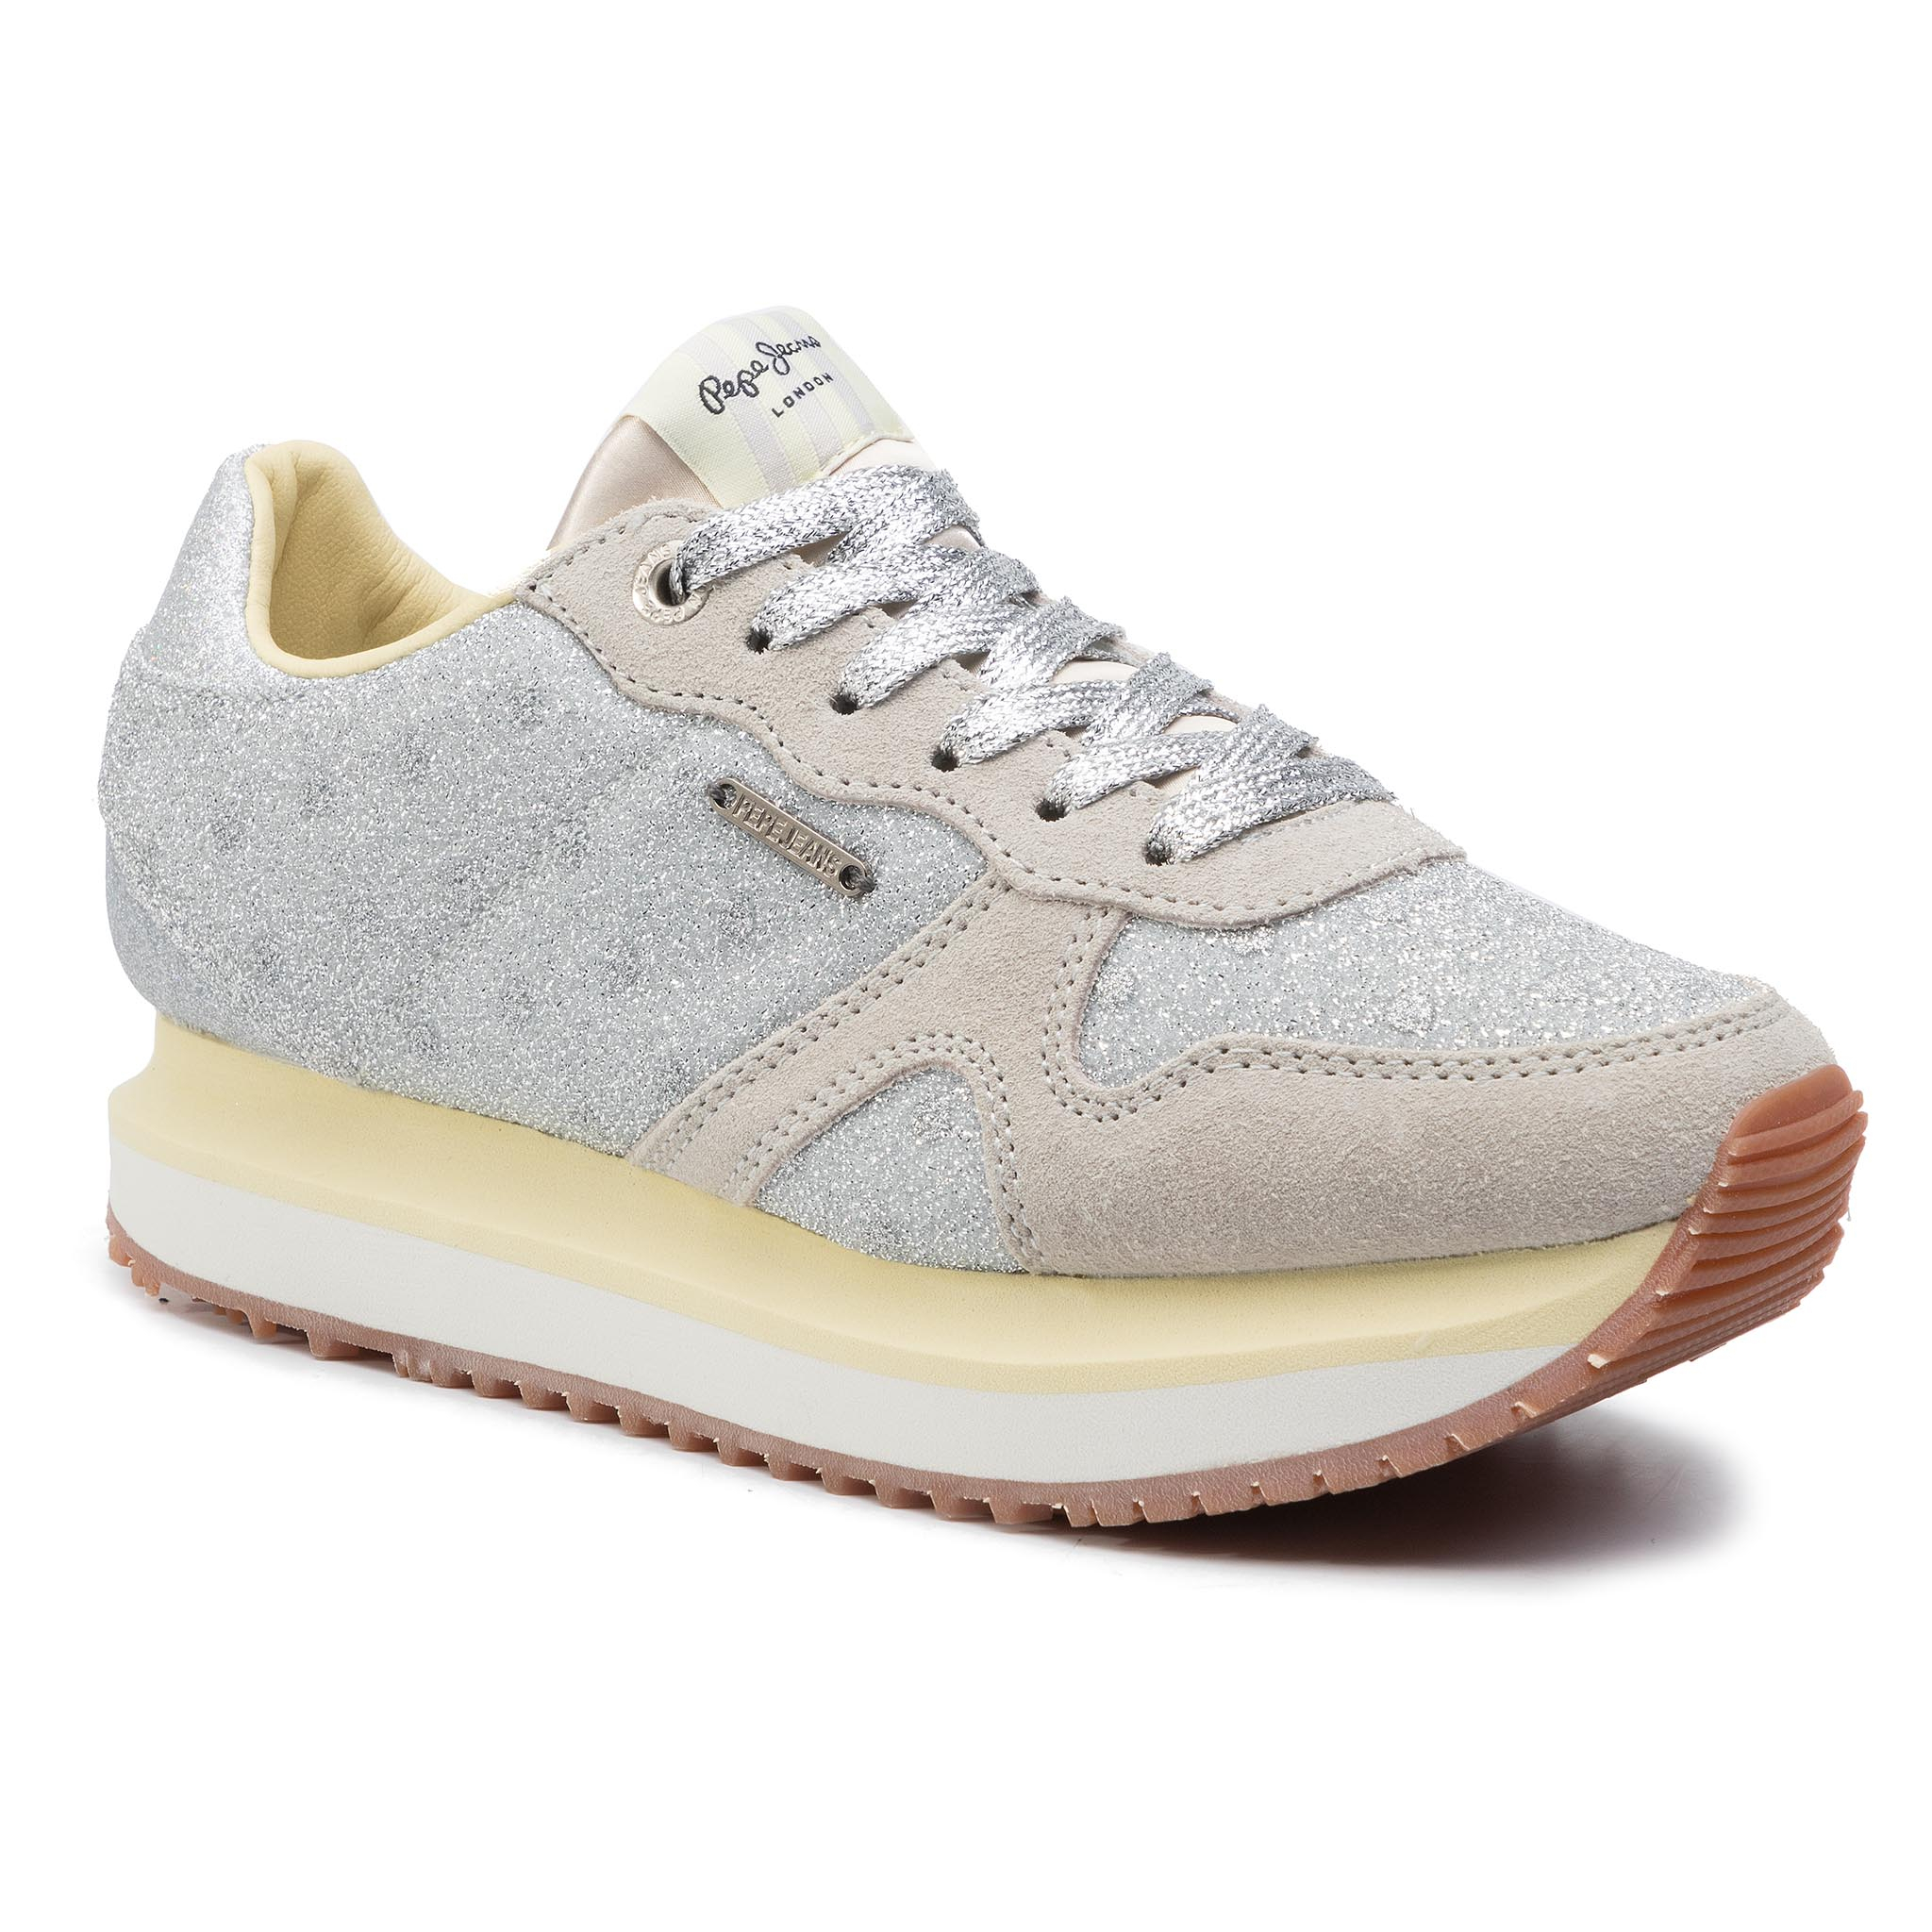 Sneakers PEPE JEANS - Zion Remake PLS30827 Silver 934